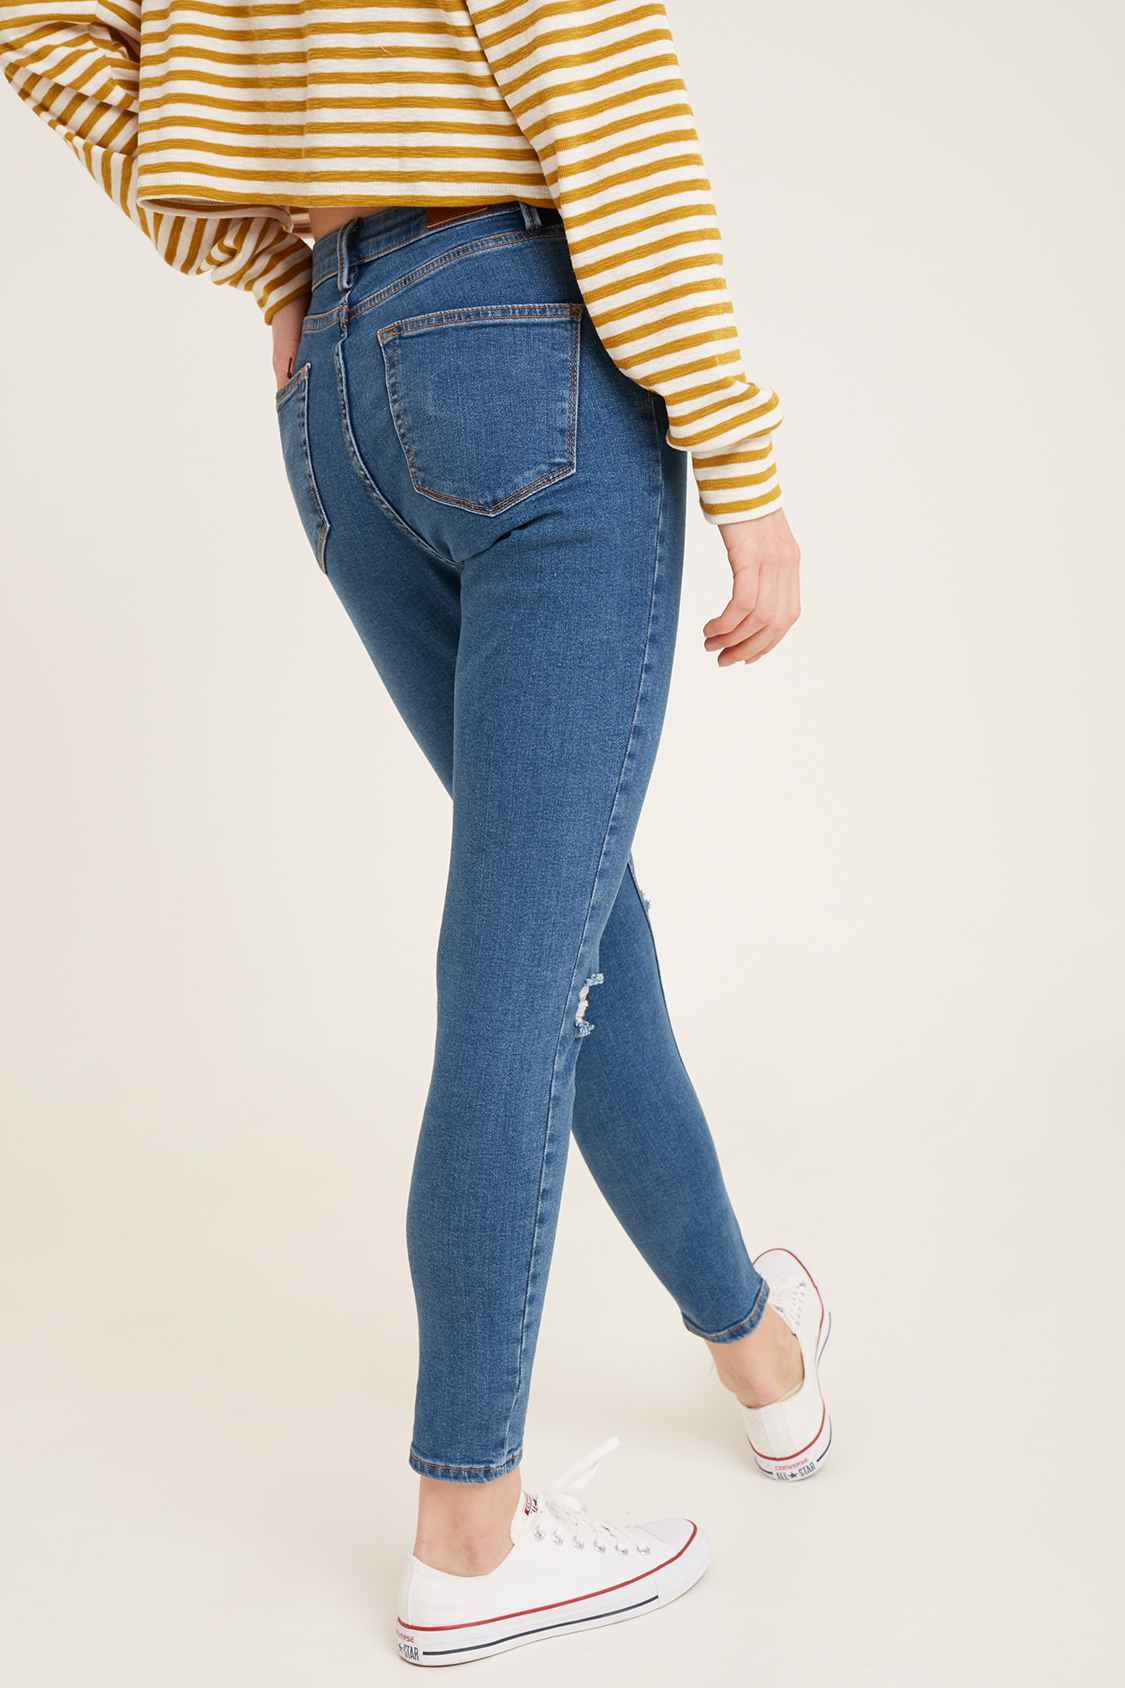 info for a1d14 06b72 Ripped skinny jeans